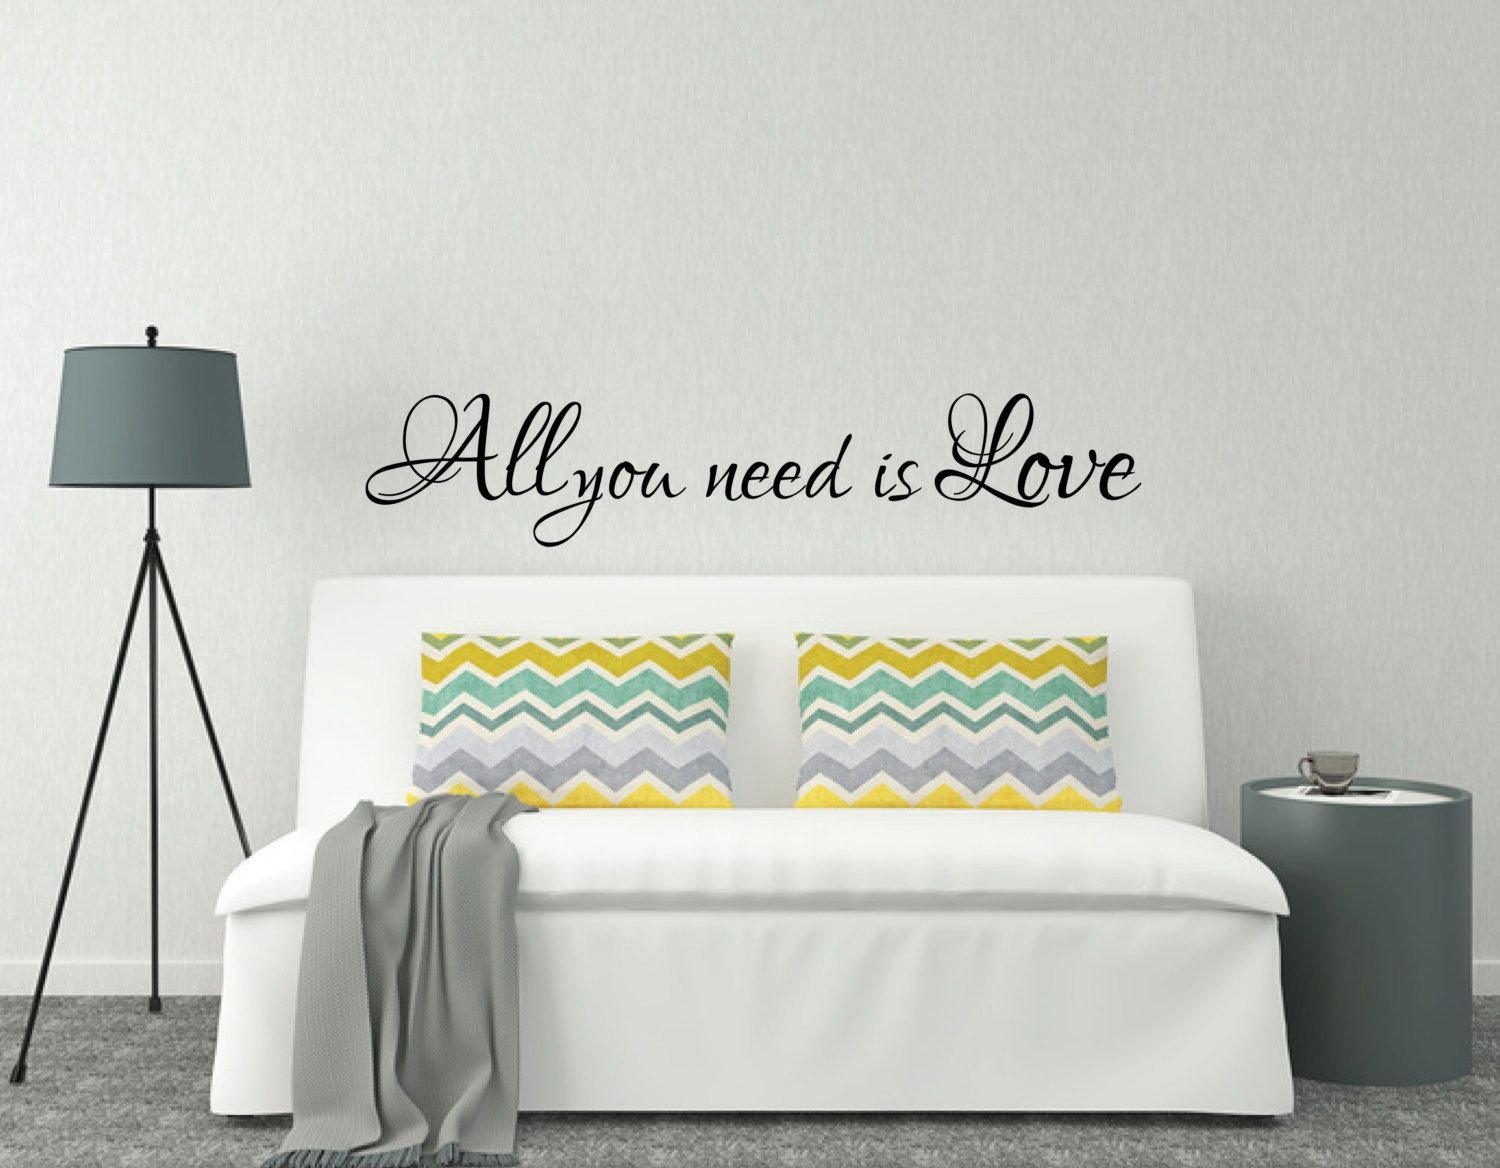 Love Bedroom Decor Above Bed Wall Sticker Love Quote All You Need Is Love L Over